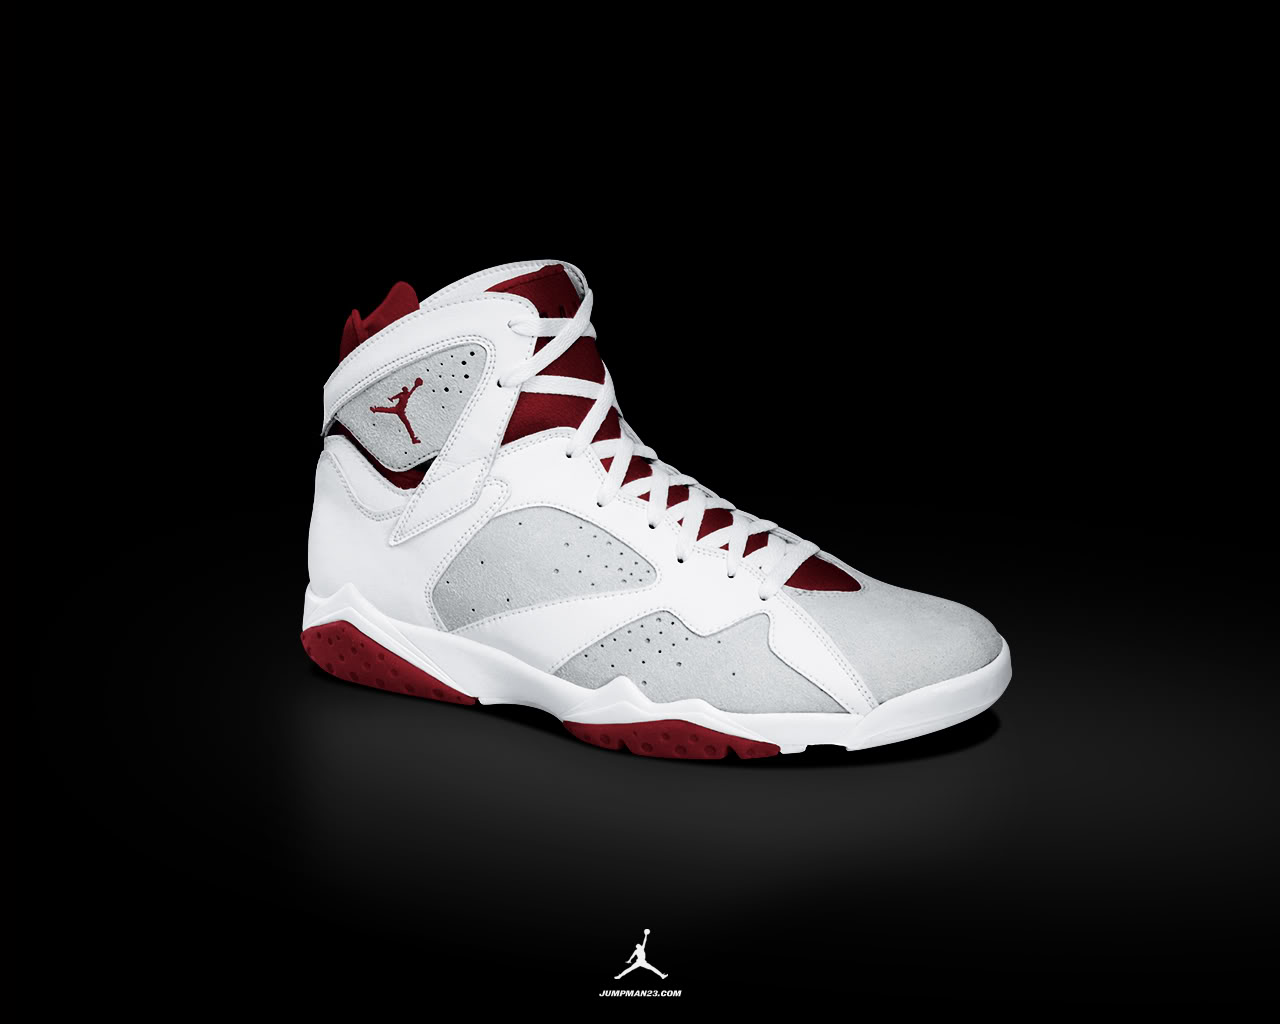 Jordan Shoes Wallpaper